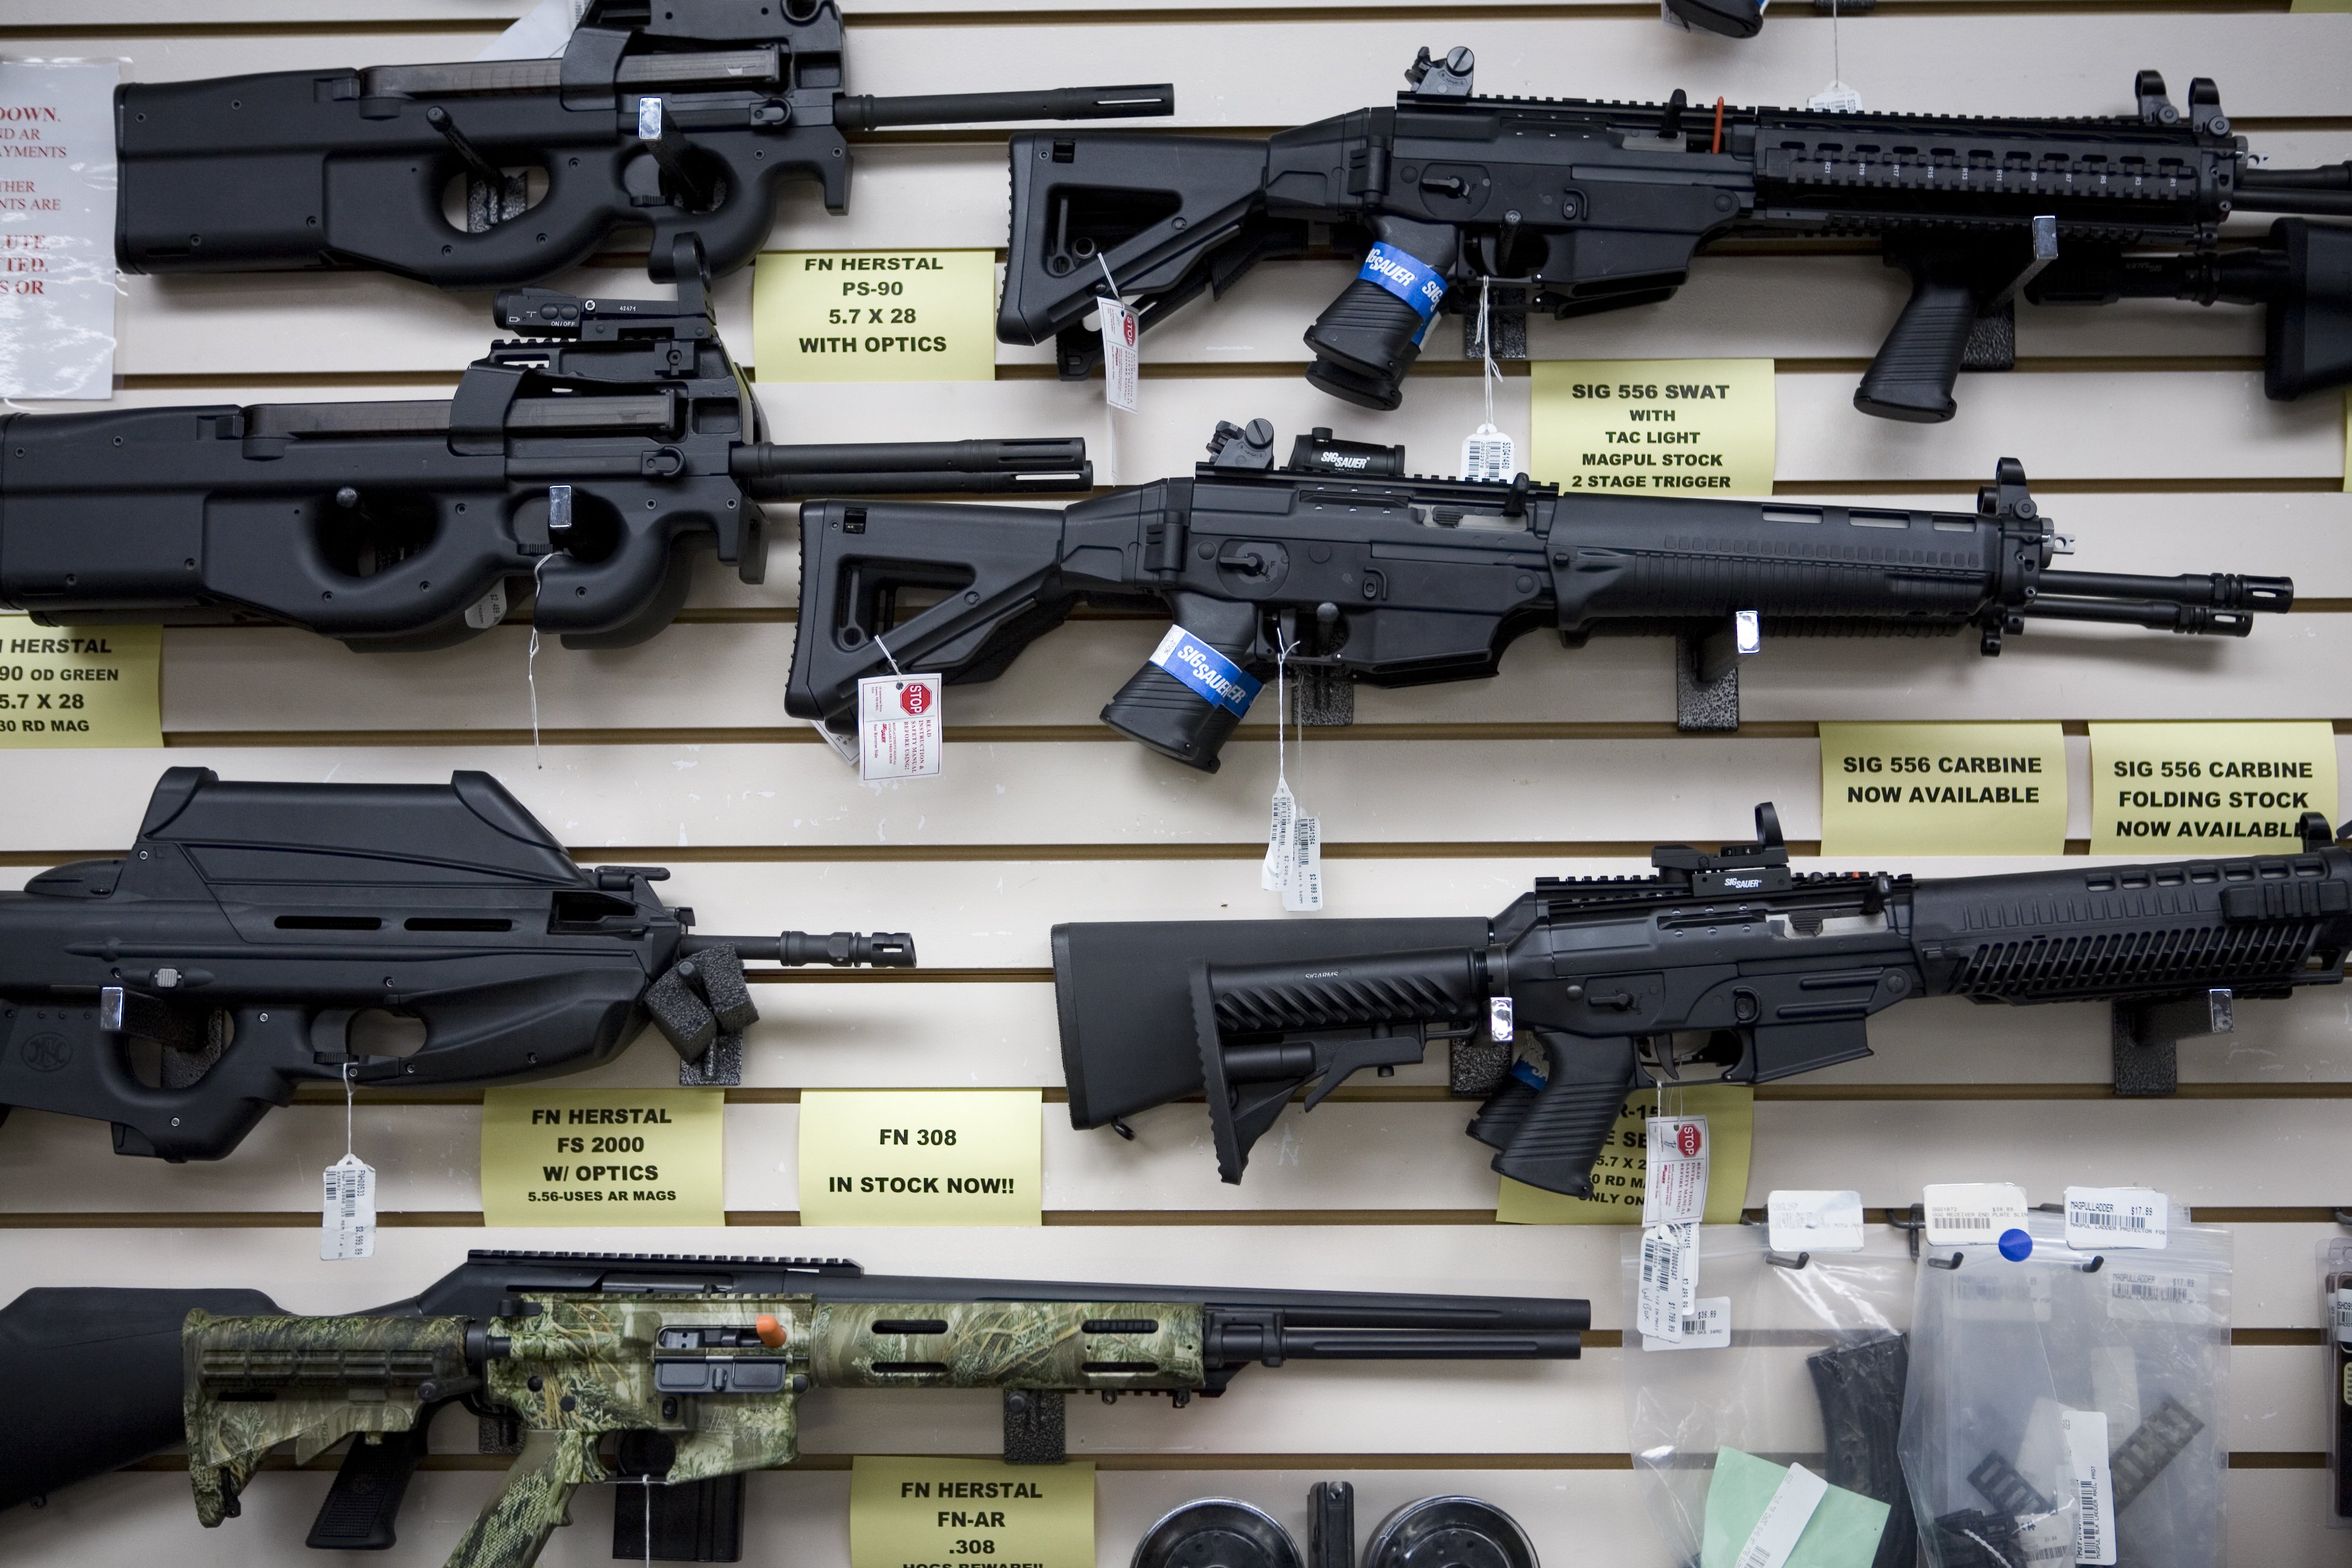 Semi-automatic long guns for sale are on display at Texas Gun, one of the 6,700 firearm dealers located near the 2,000-miles-long US-Mexico border.